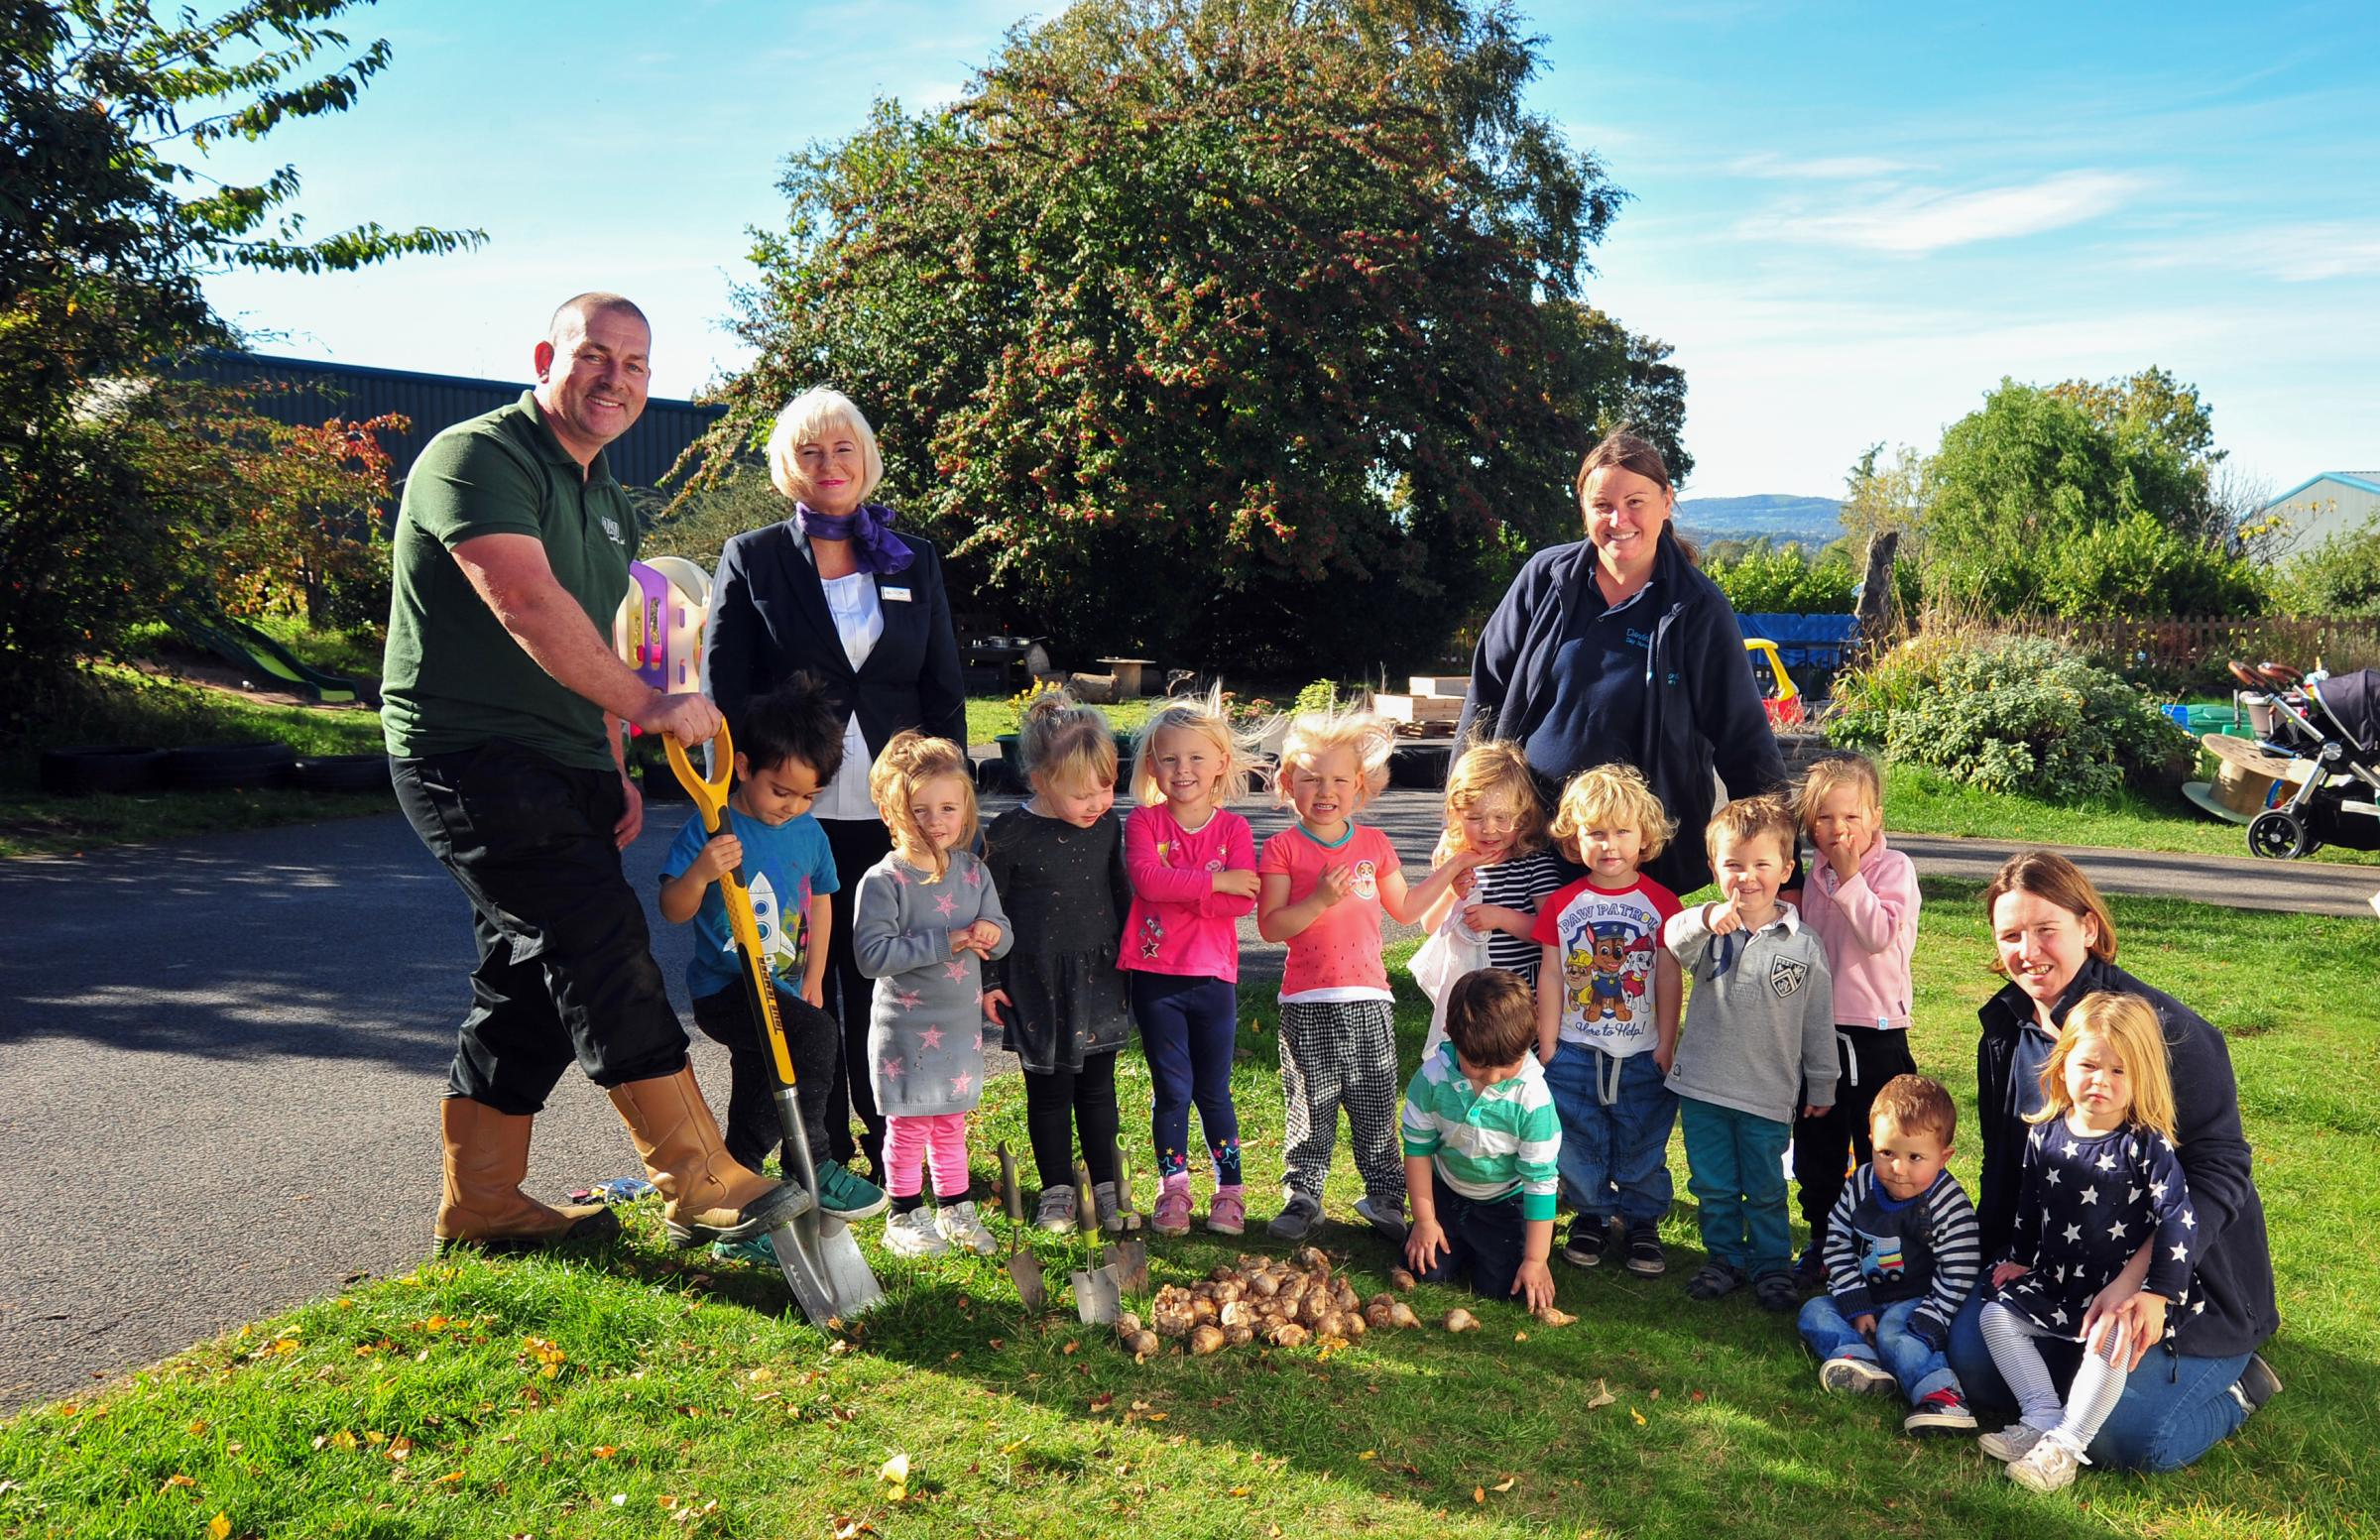 Children in Farndon planting daffodil bulbs with Taylor Wimpey.